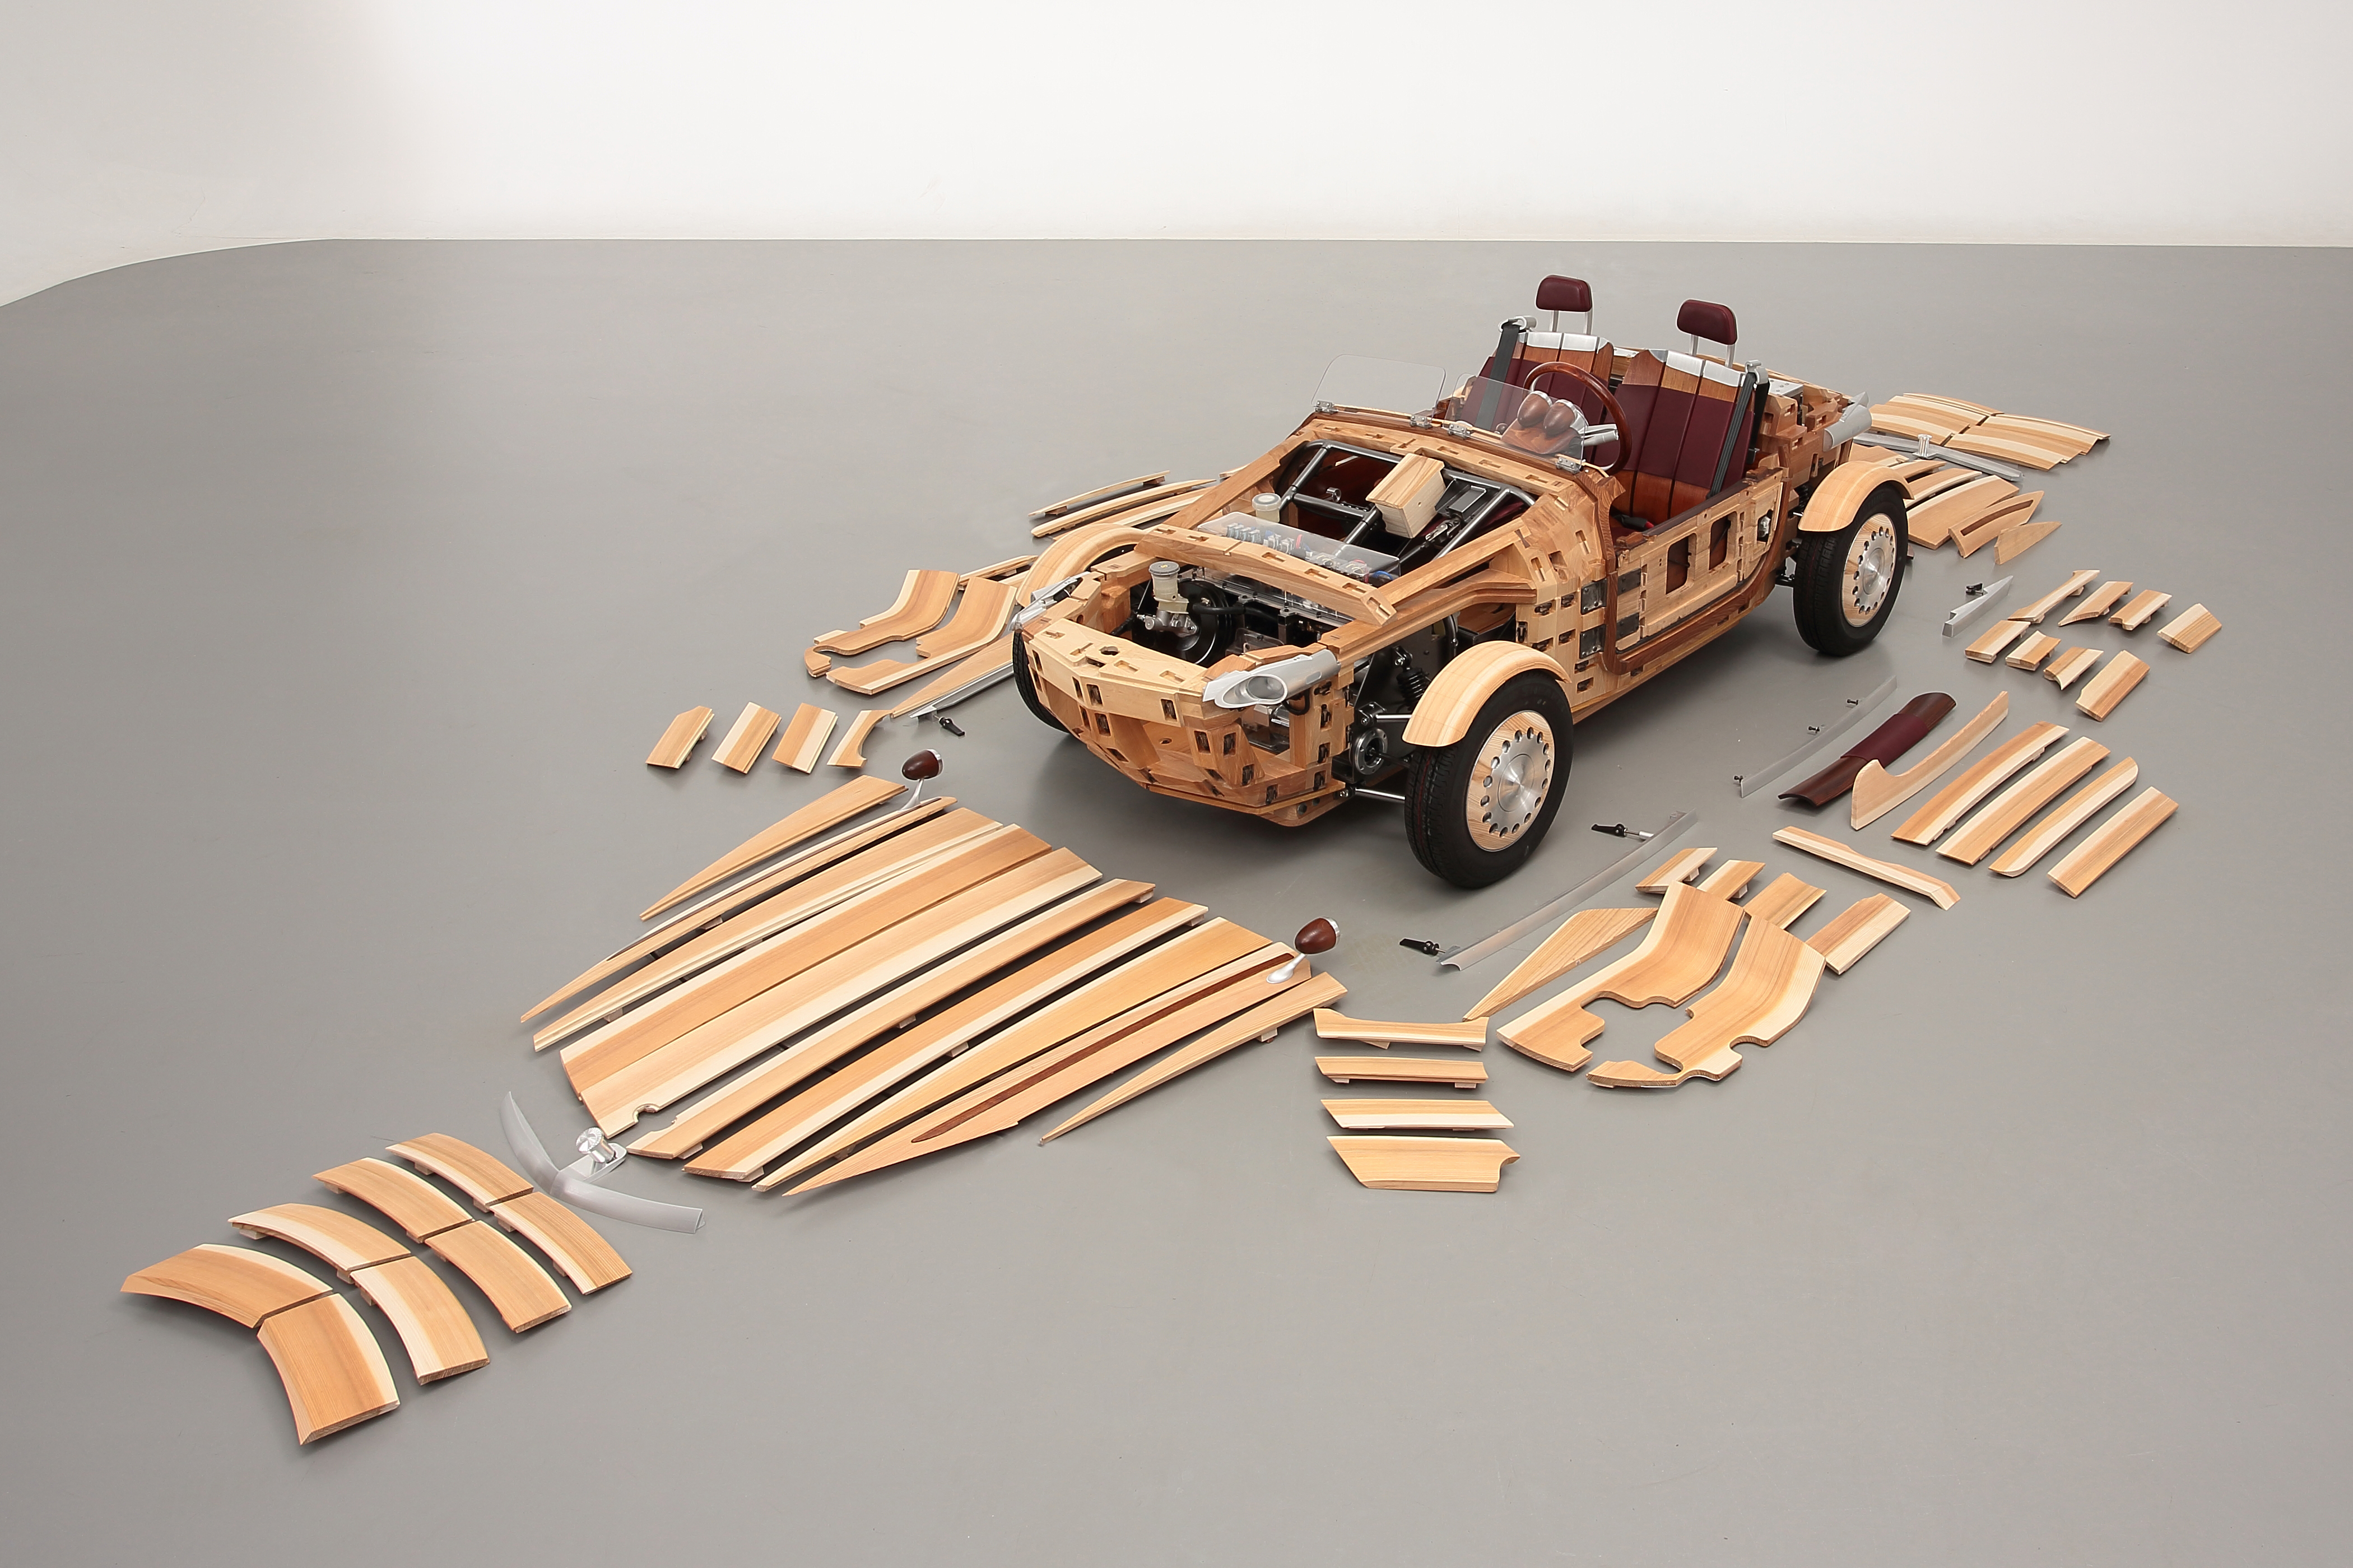 d5750a0405a Toyota s wood car fits together like a jigsaw puzzle - CNN Style